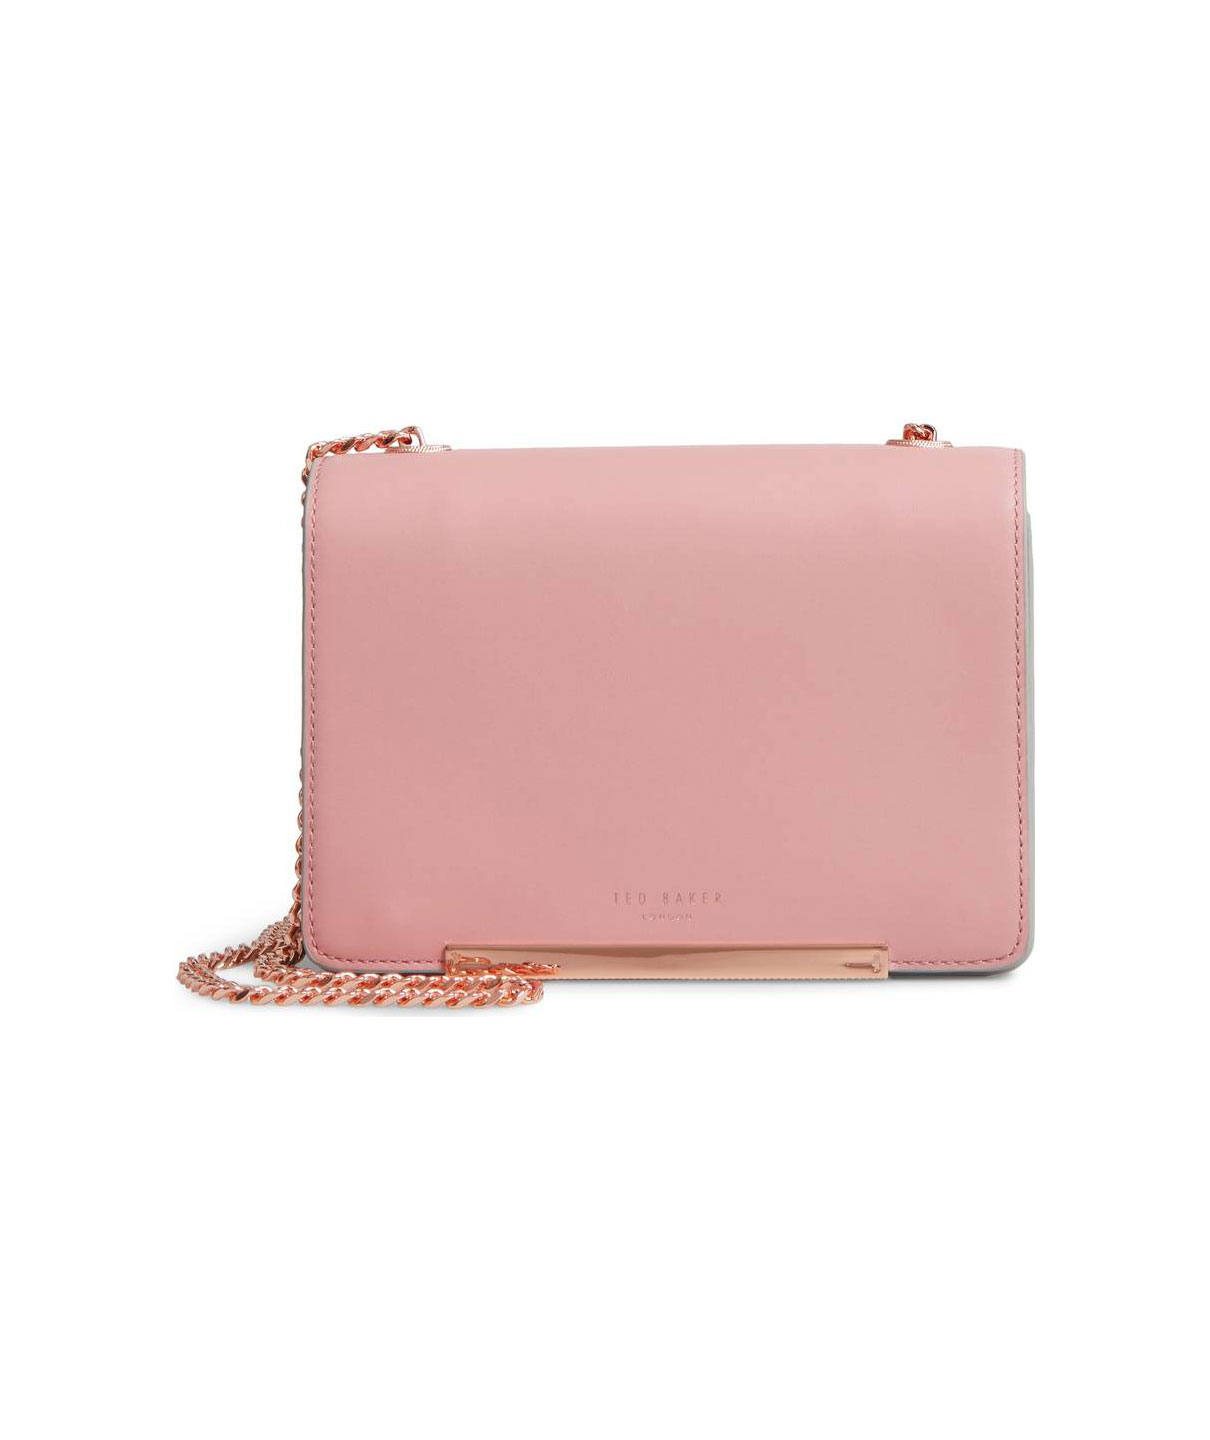 Grab These 5 Designer Purses Before They Sell out at Nordstrom s ... 2b0d04fa7f